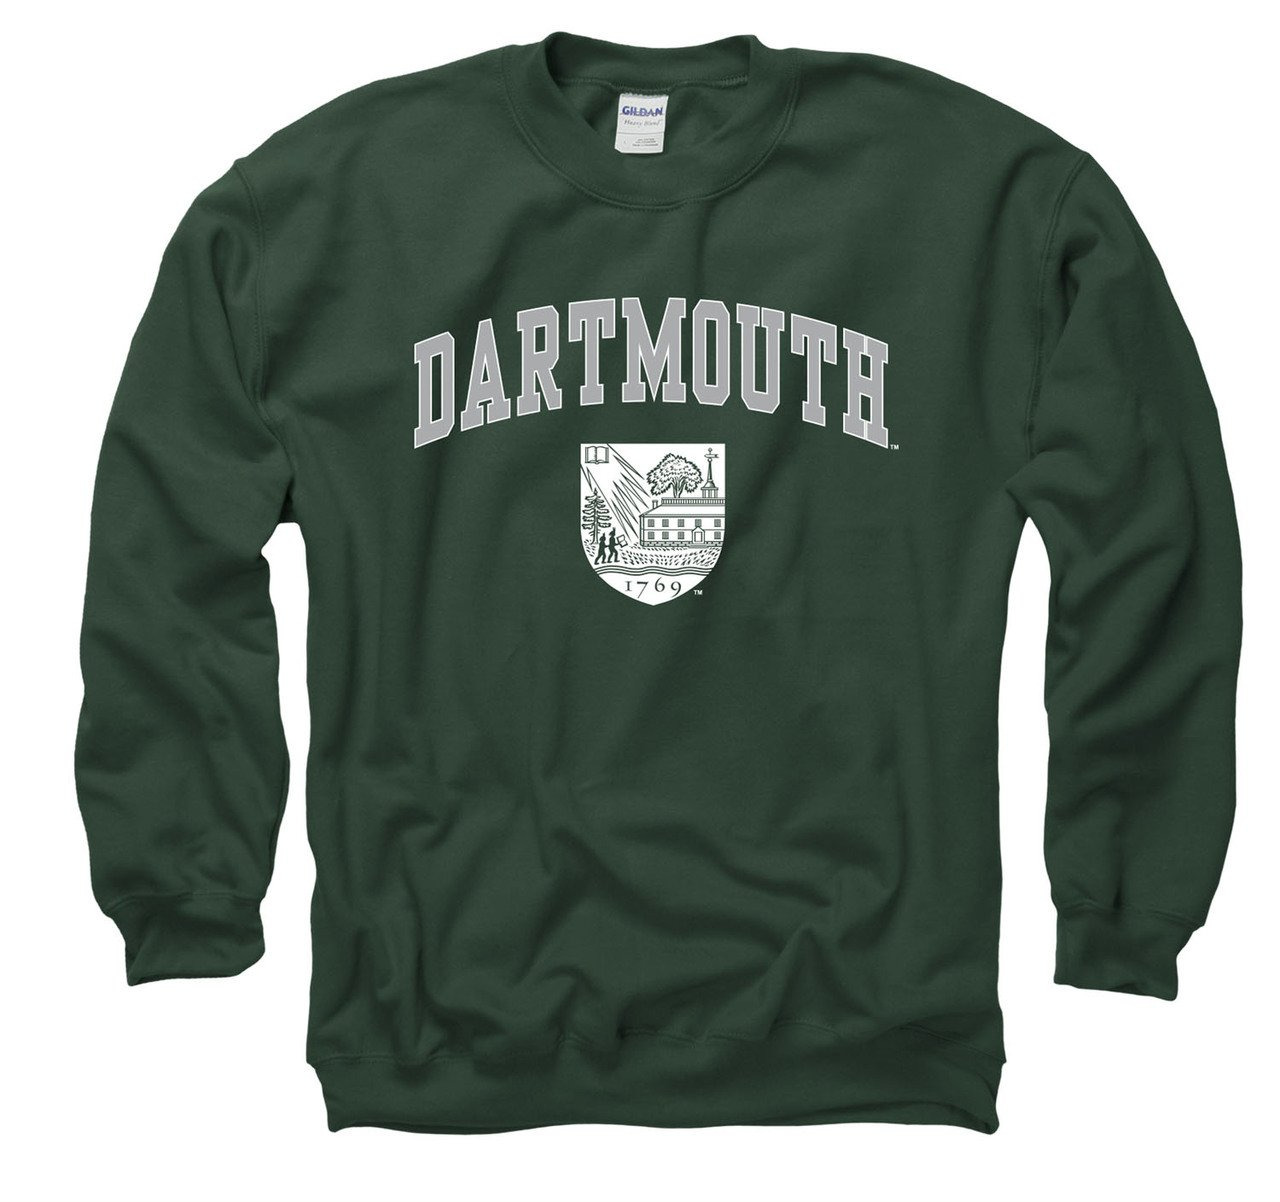 Amazon.com : Dartmouth Big Green Adult Arch and Seal Crewneck Sweatshirt - Green, X-Large : Sports & Outdoors